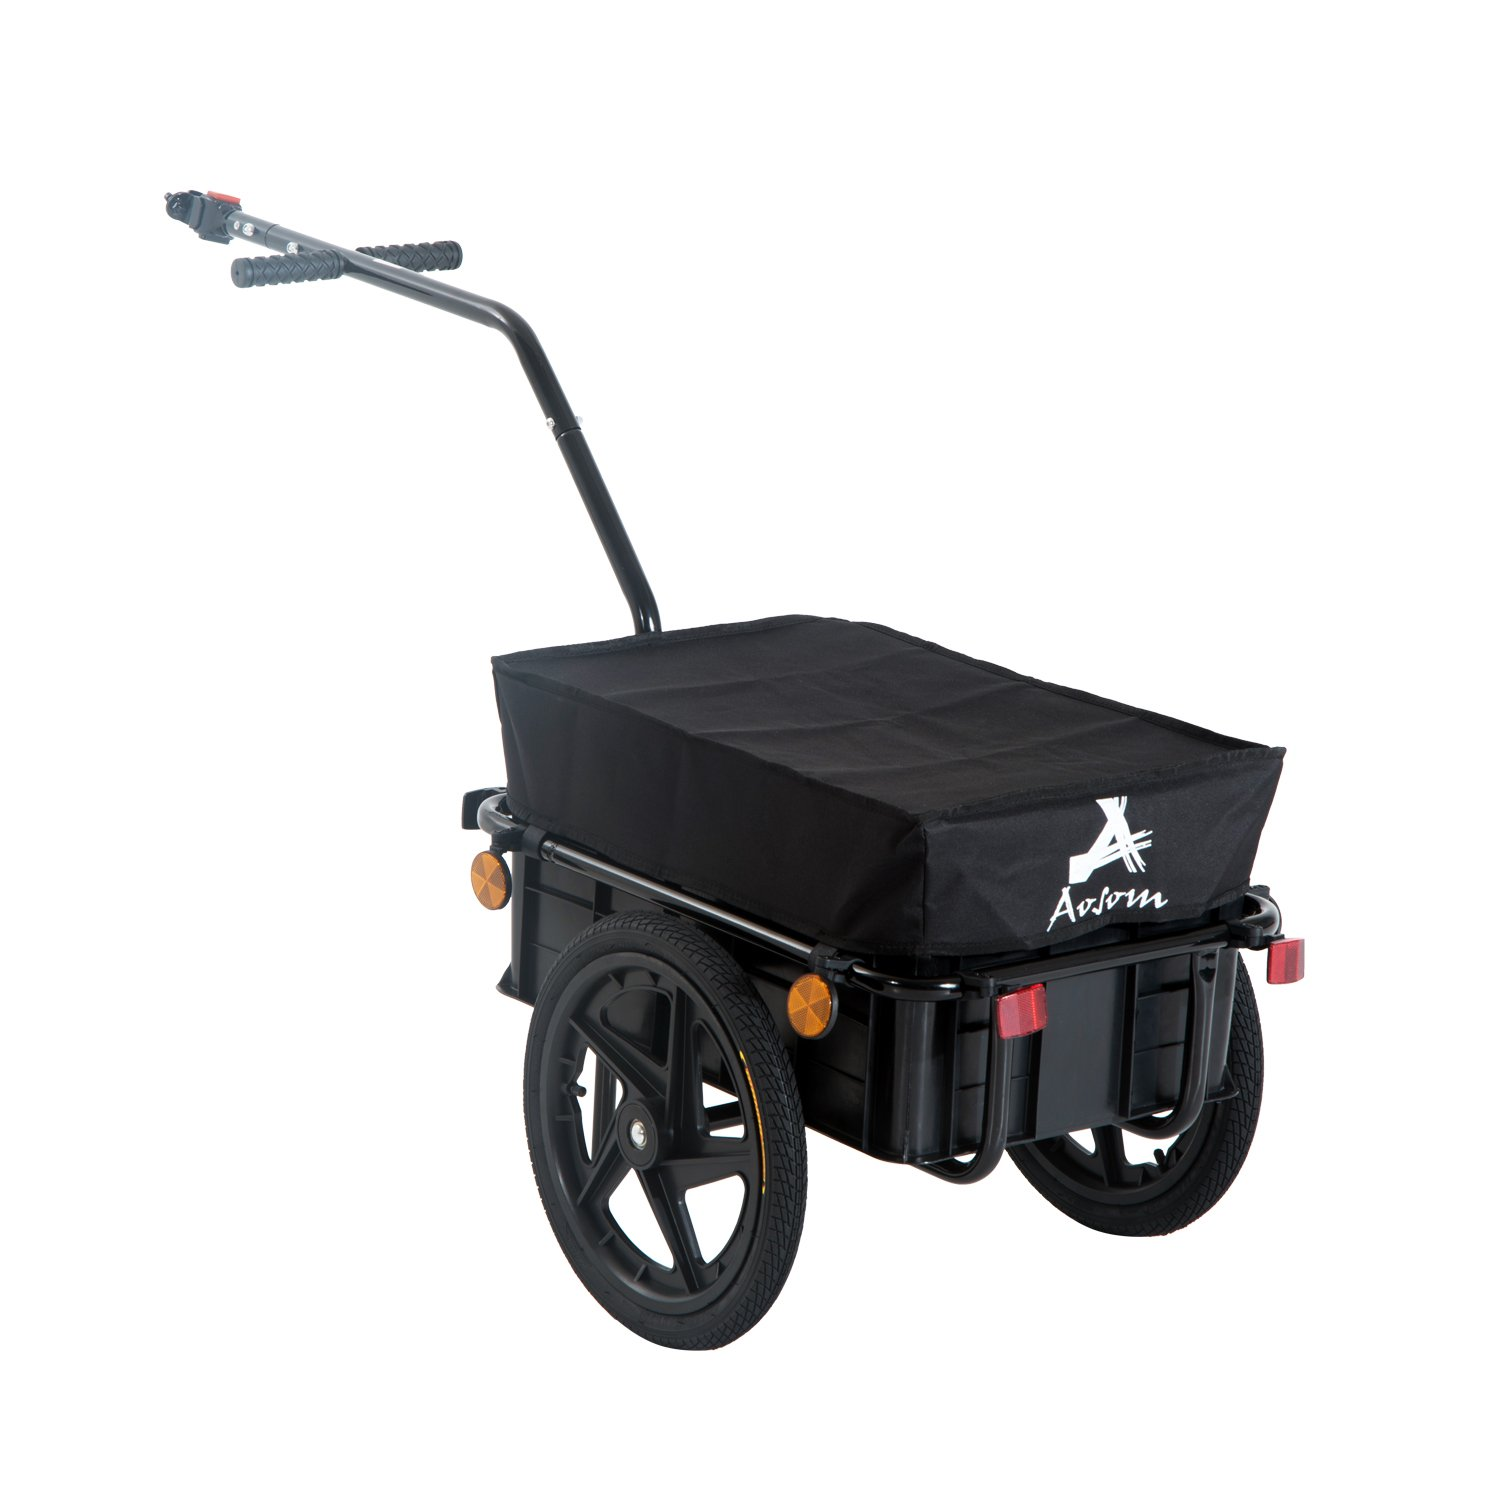 Associated product image for Aosom Enclosed Bicycle Cargo Trailer - Black